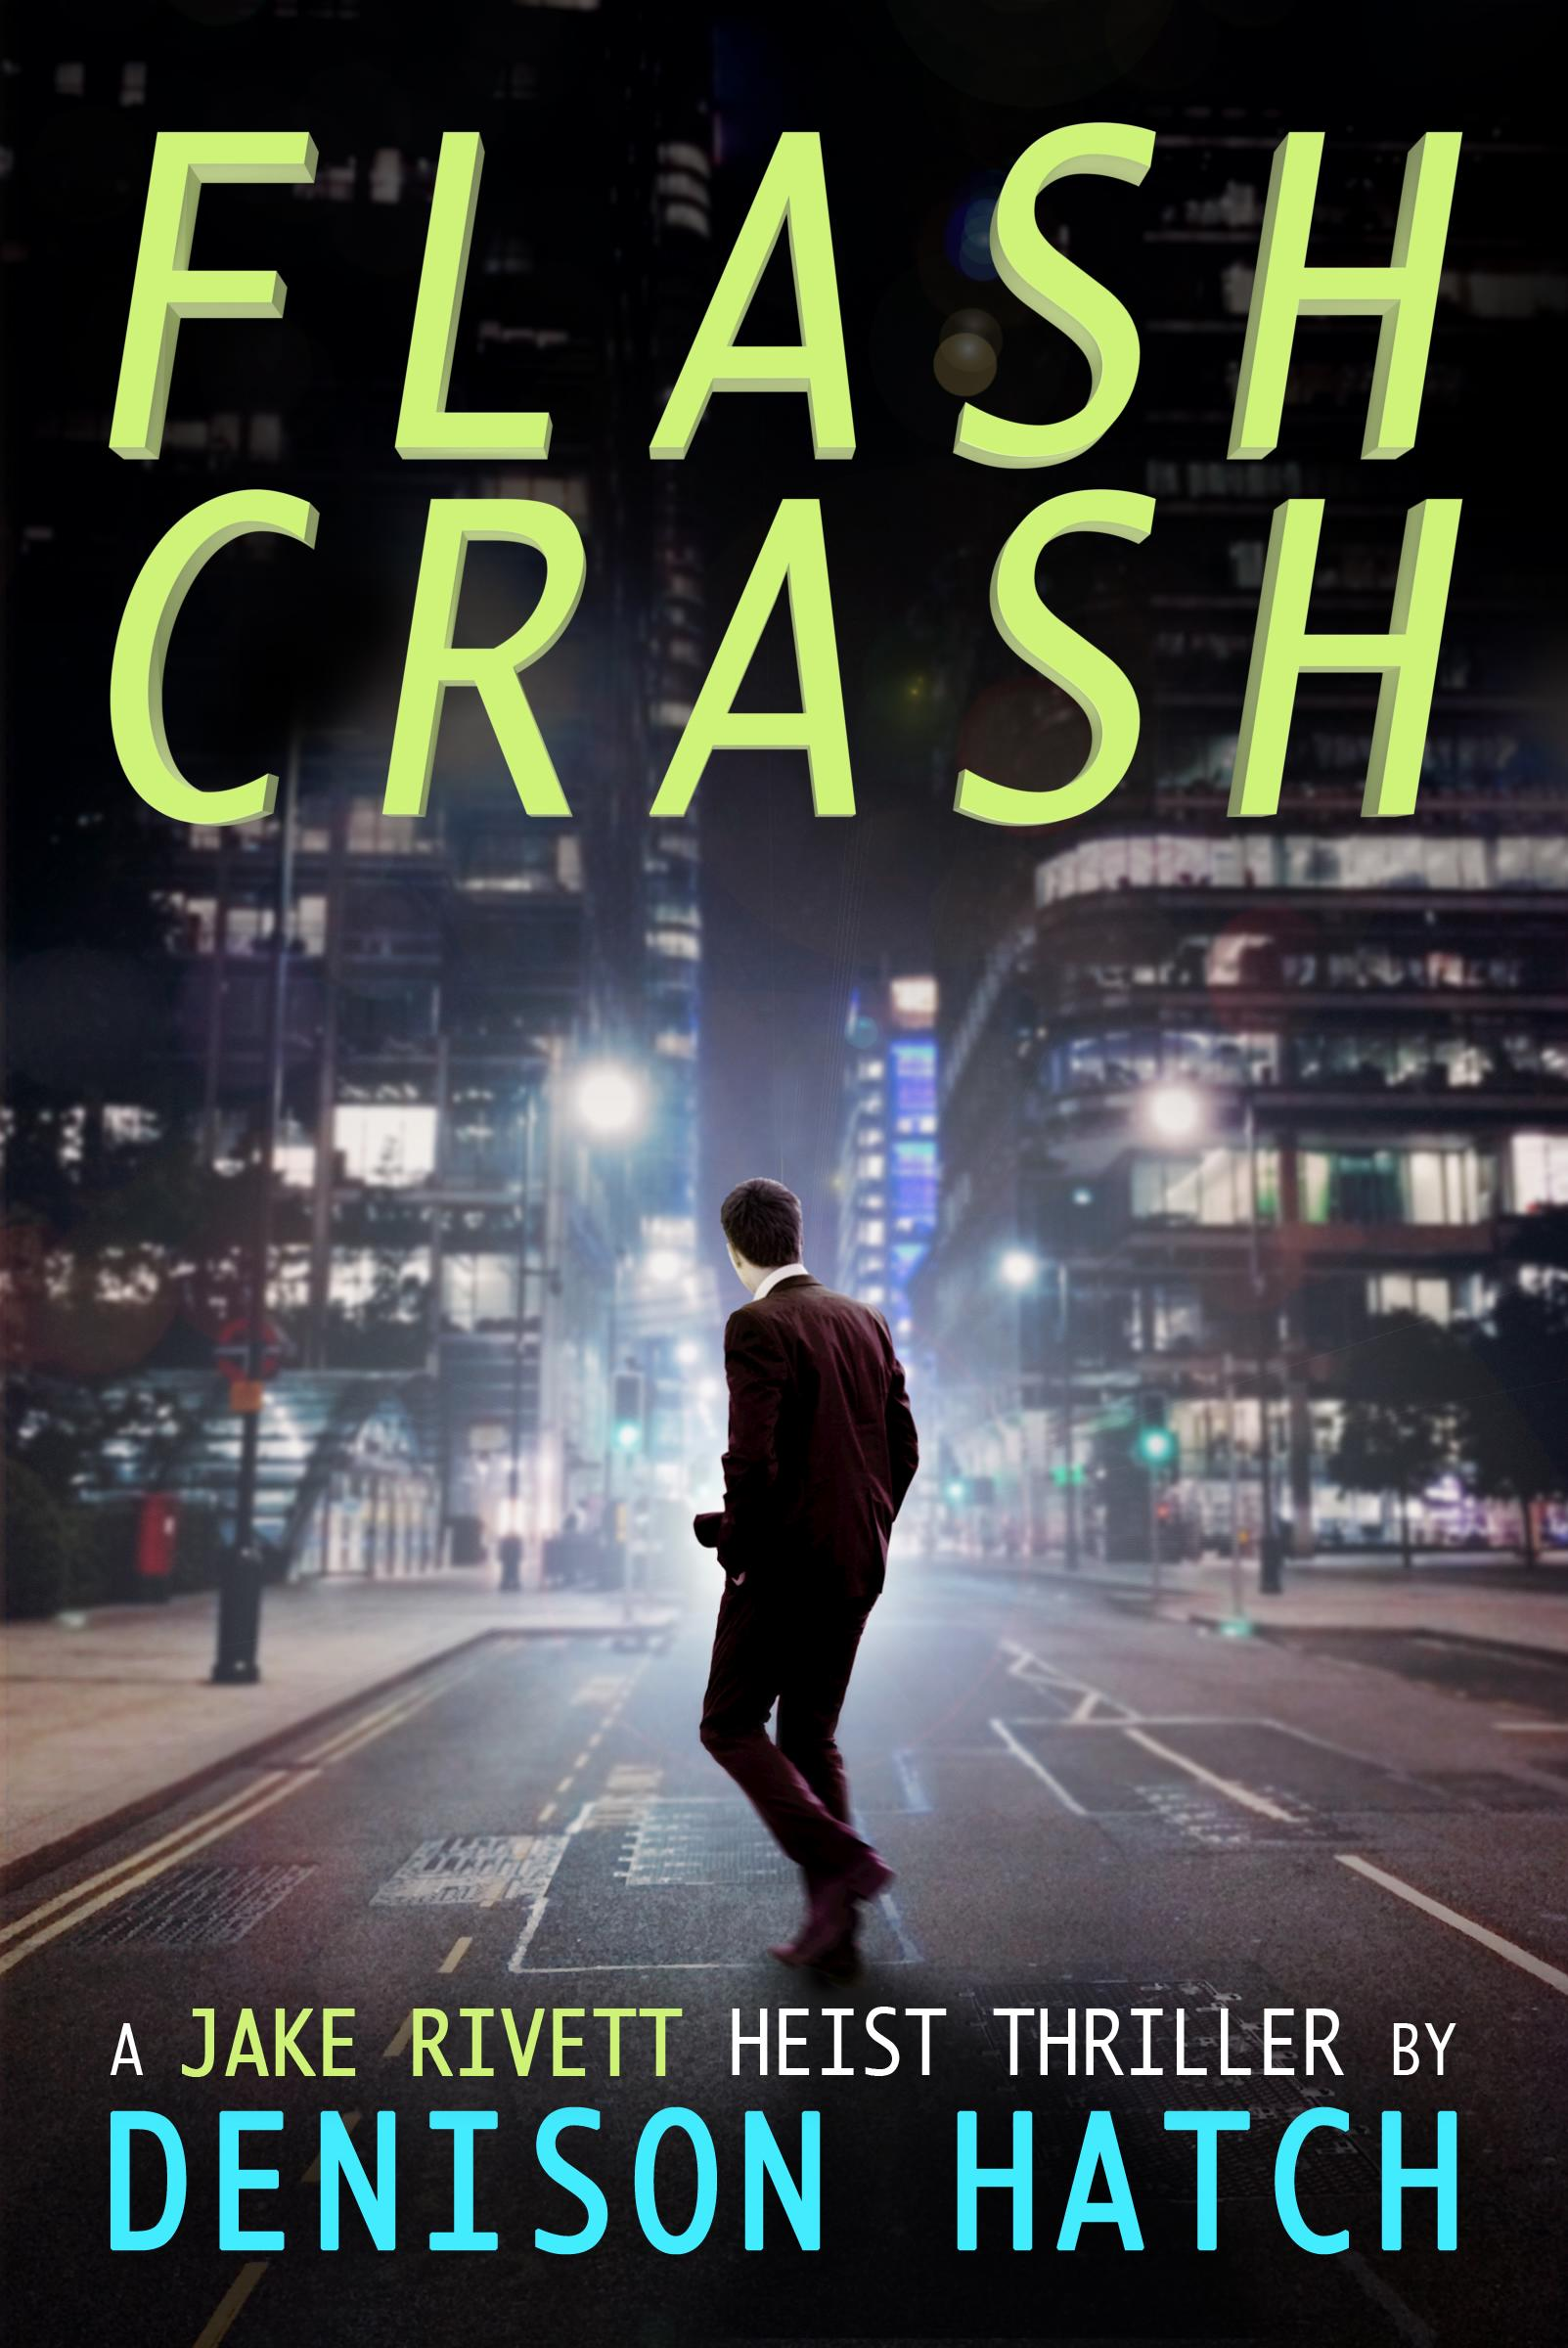 Flash Crash by Denison Hatch